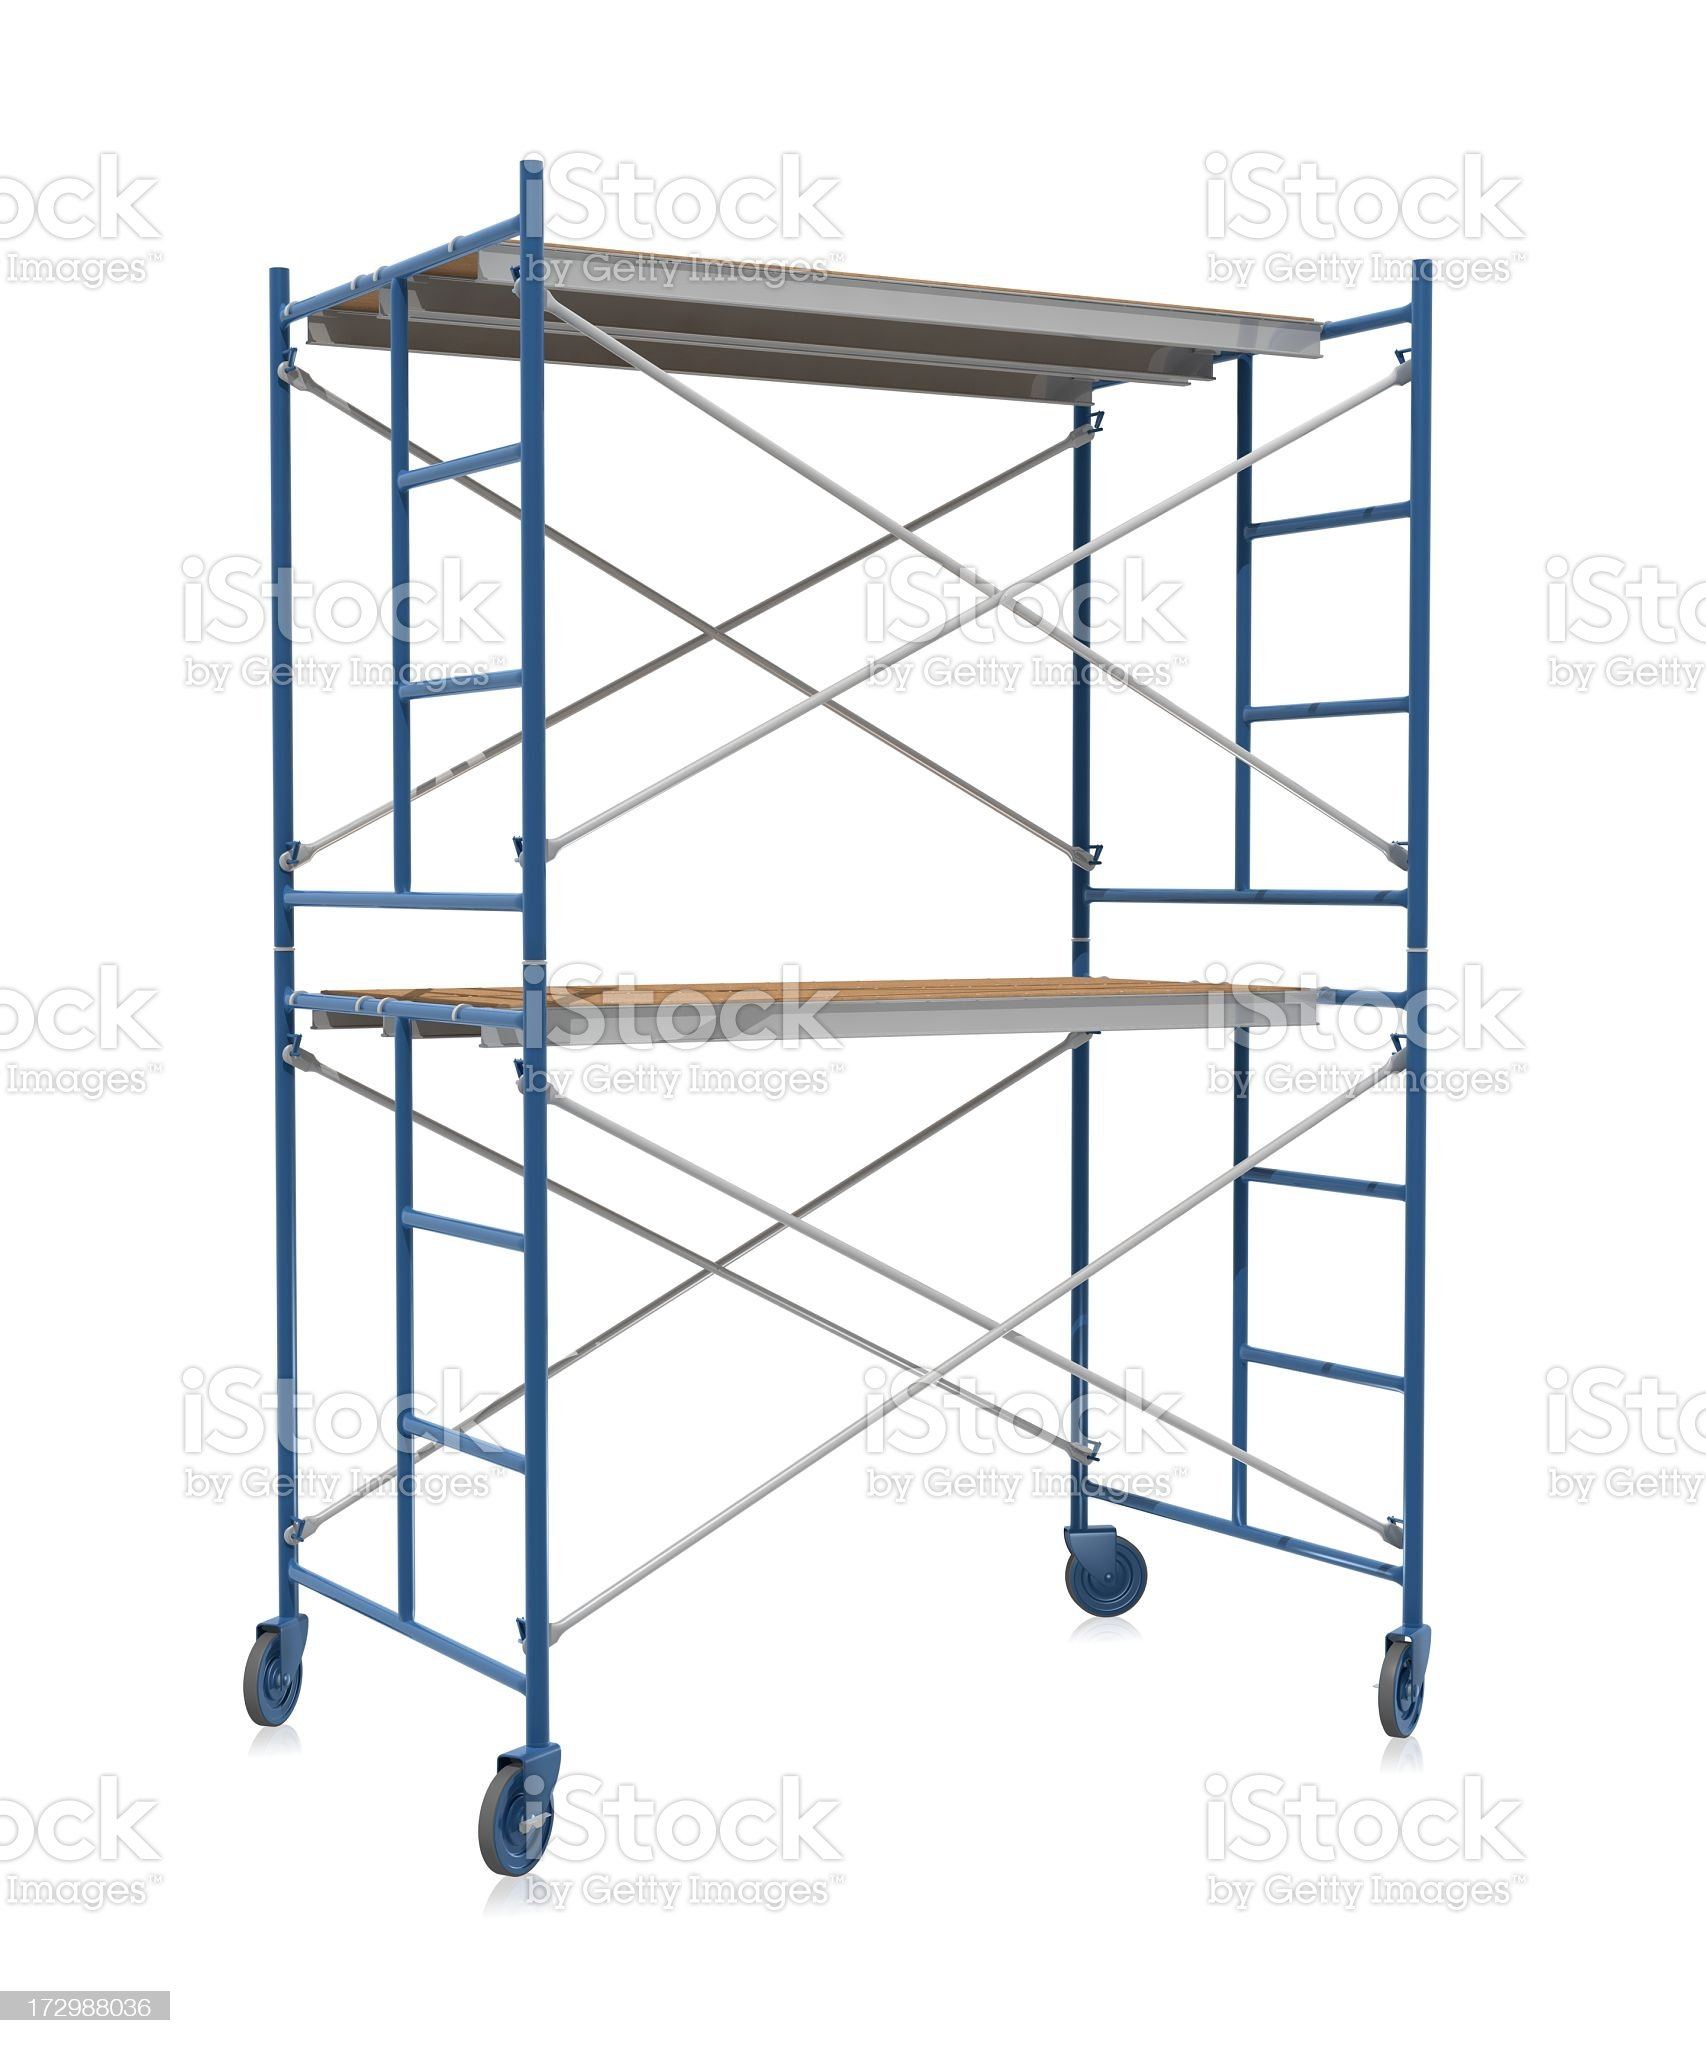 Scaffolding on wheels on a white background royalty-free stock photo